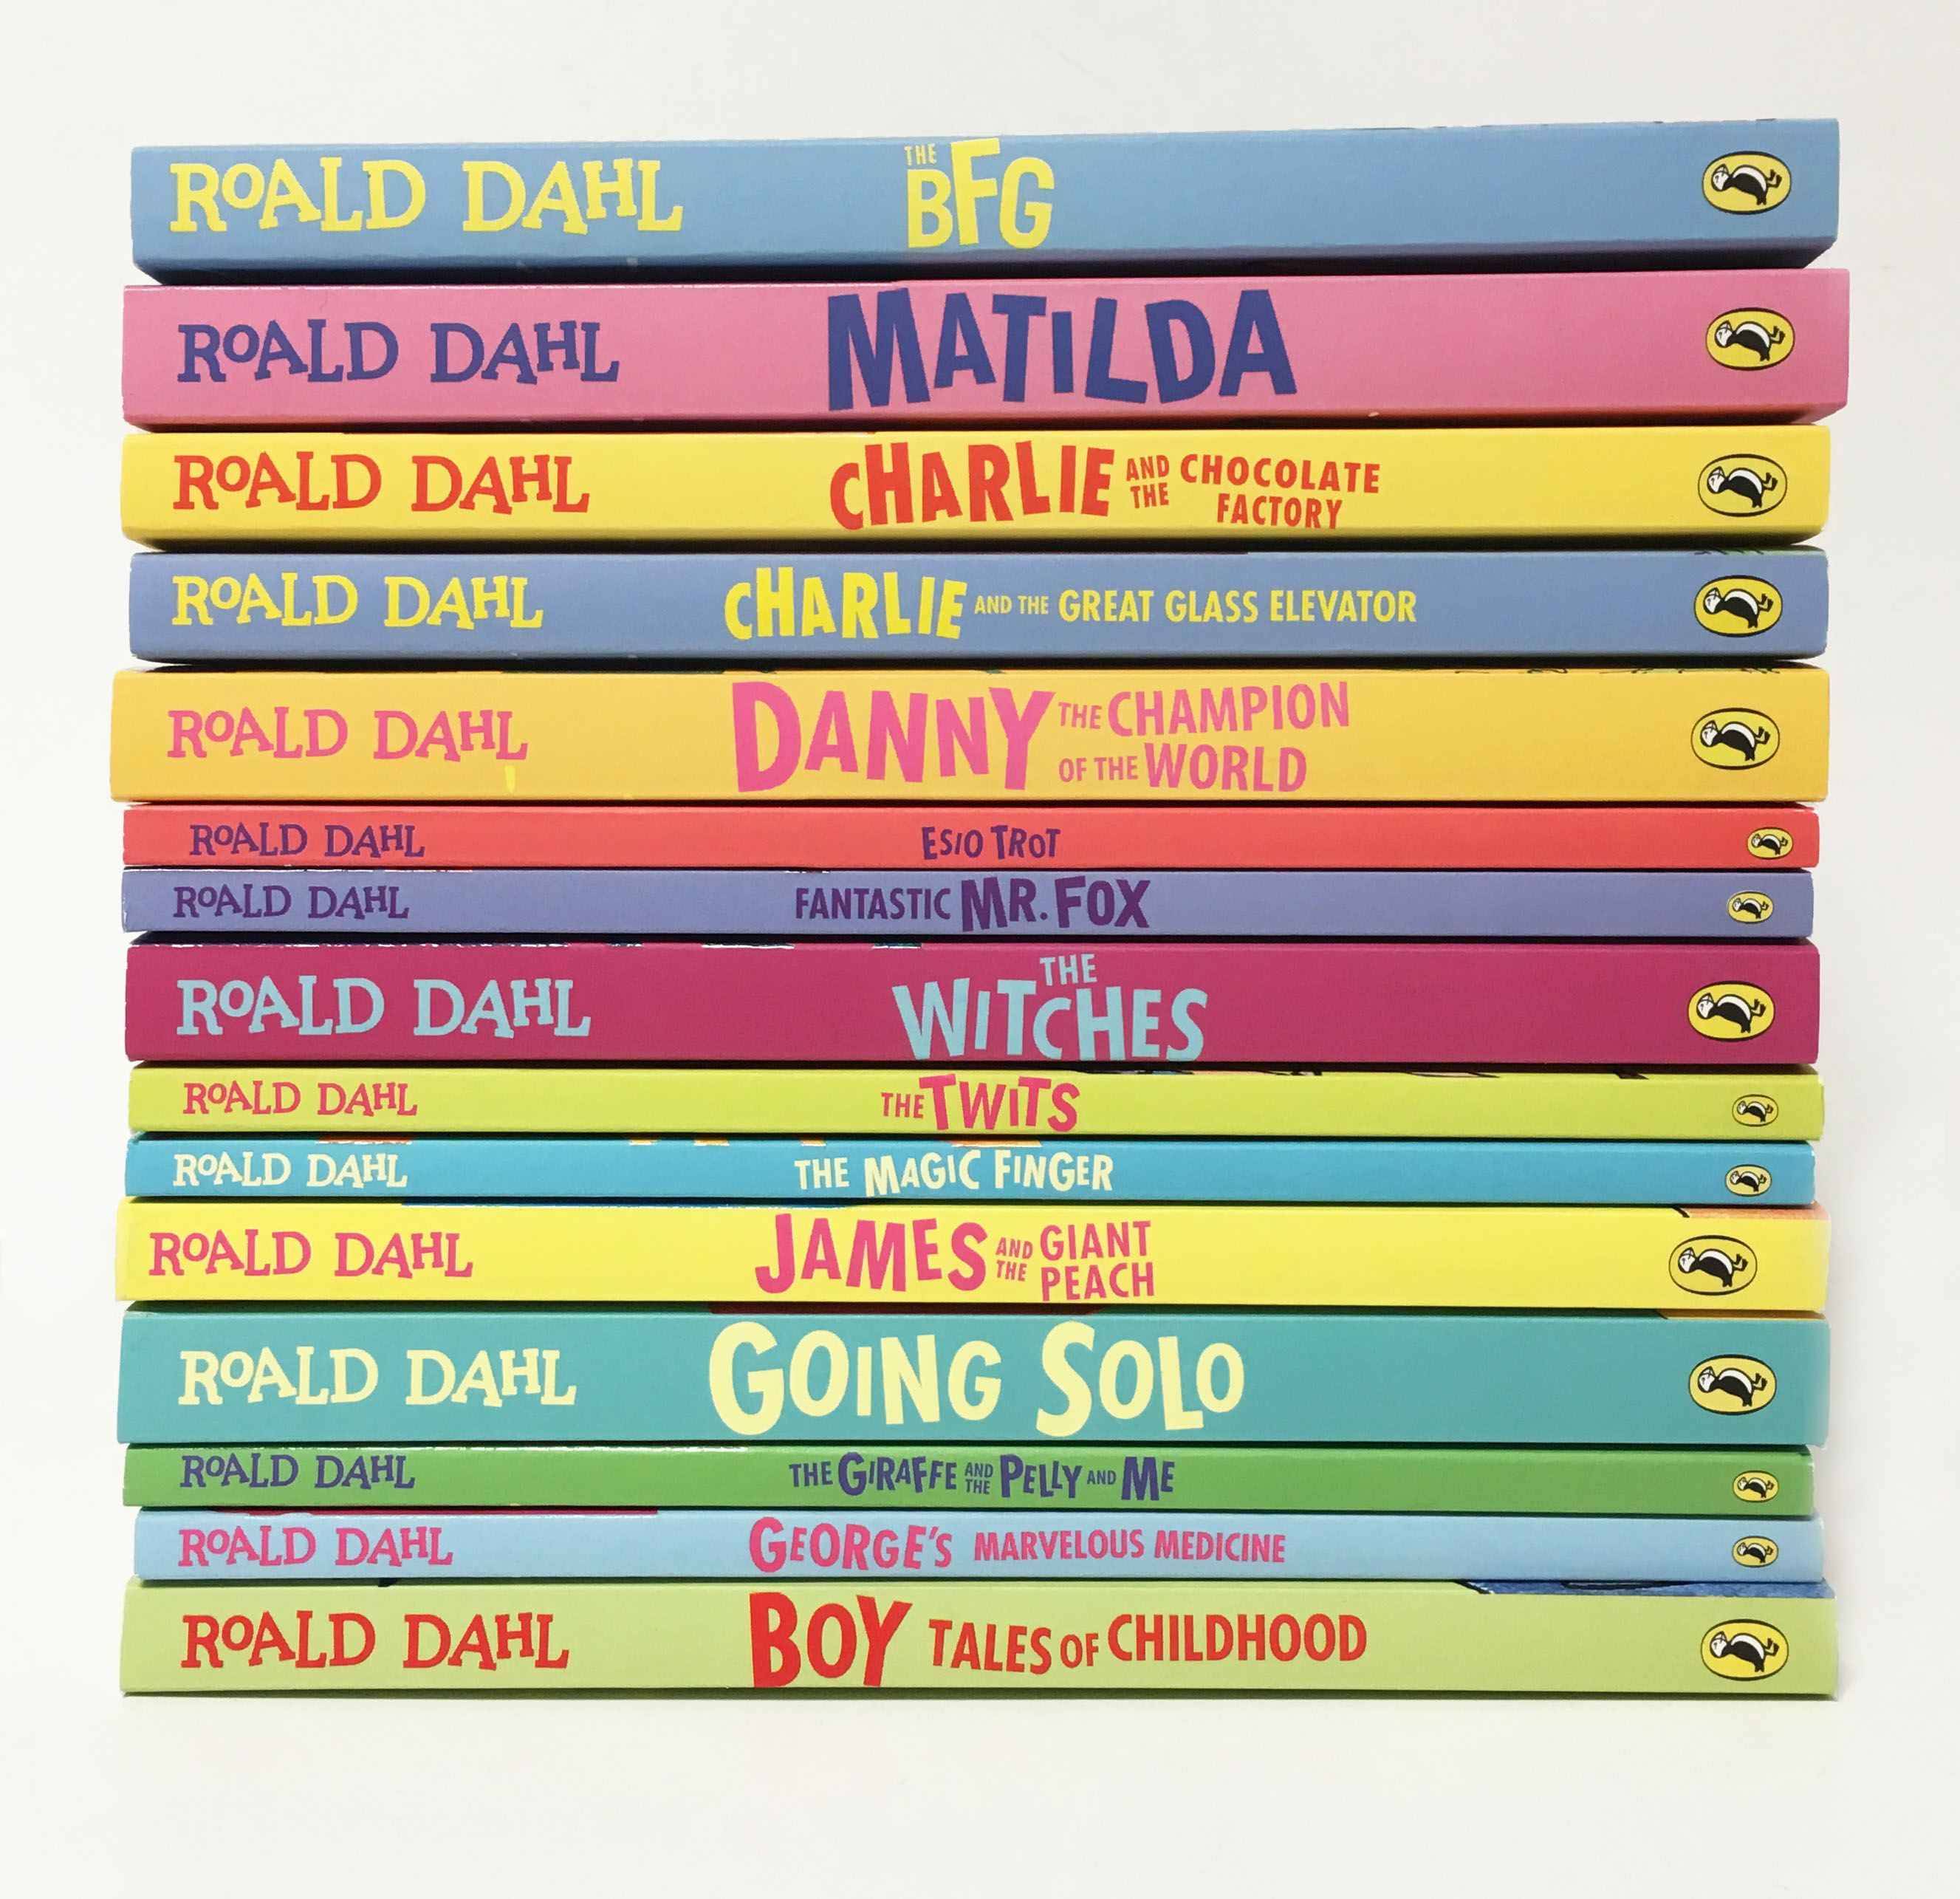 Phizz whizzing books from roald dahl the worlds number one phizz whizzing books from roald dahl the worlds number one storyteller how many have you read in the stack fandeluxe Images